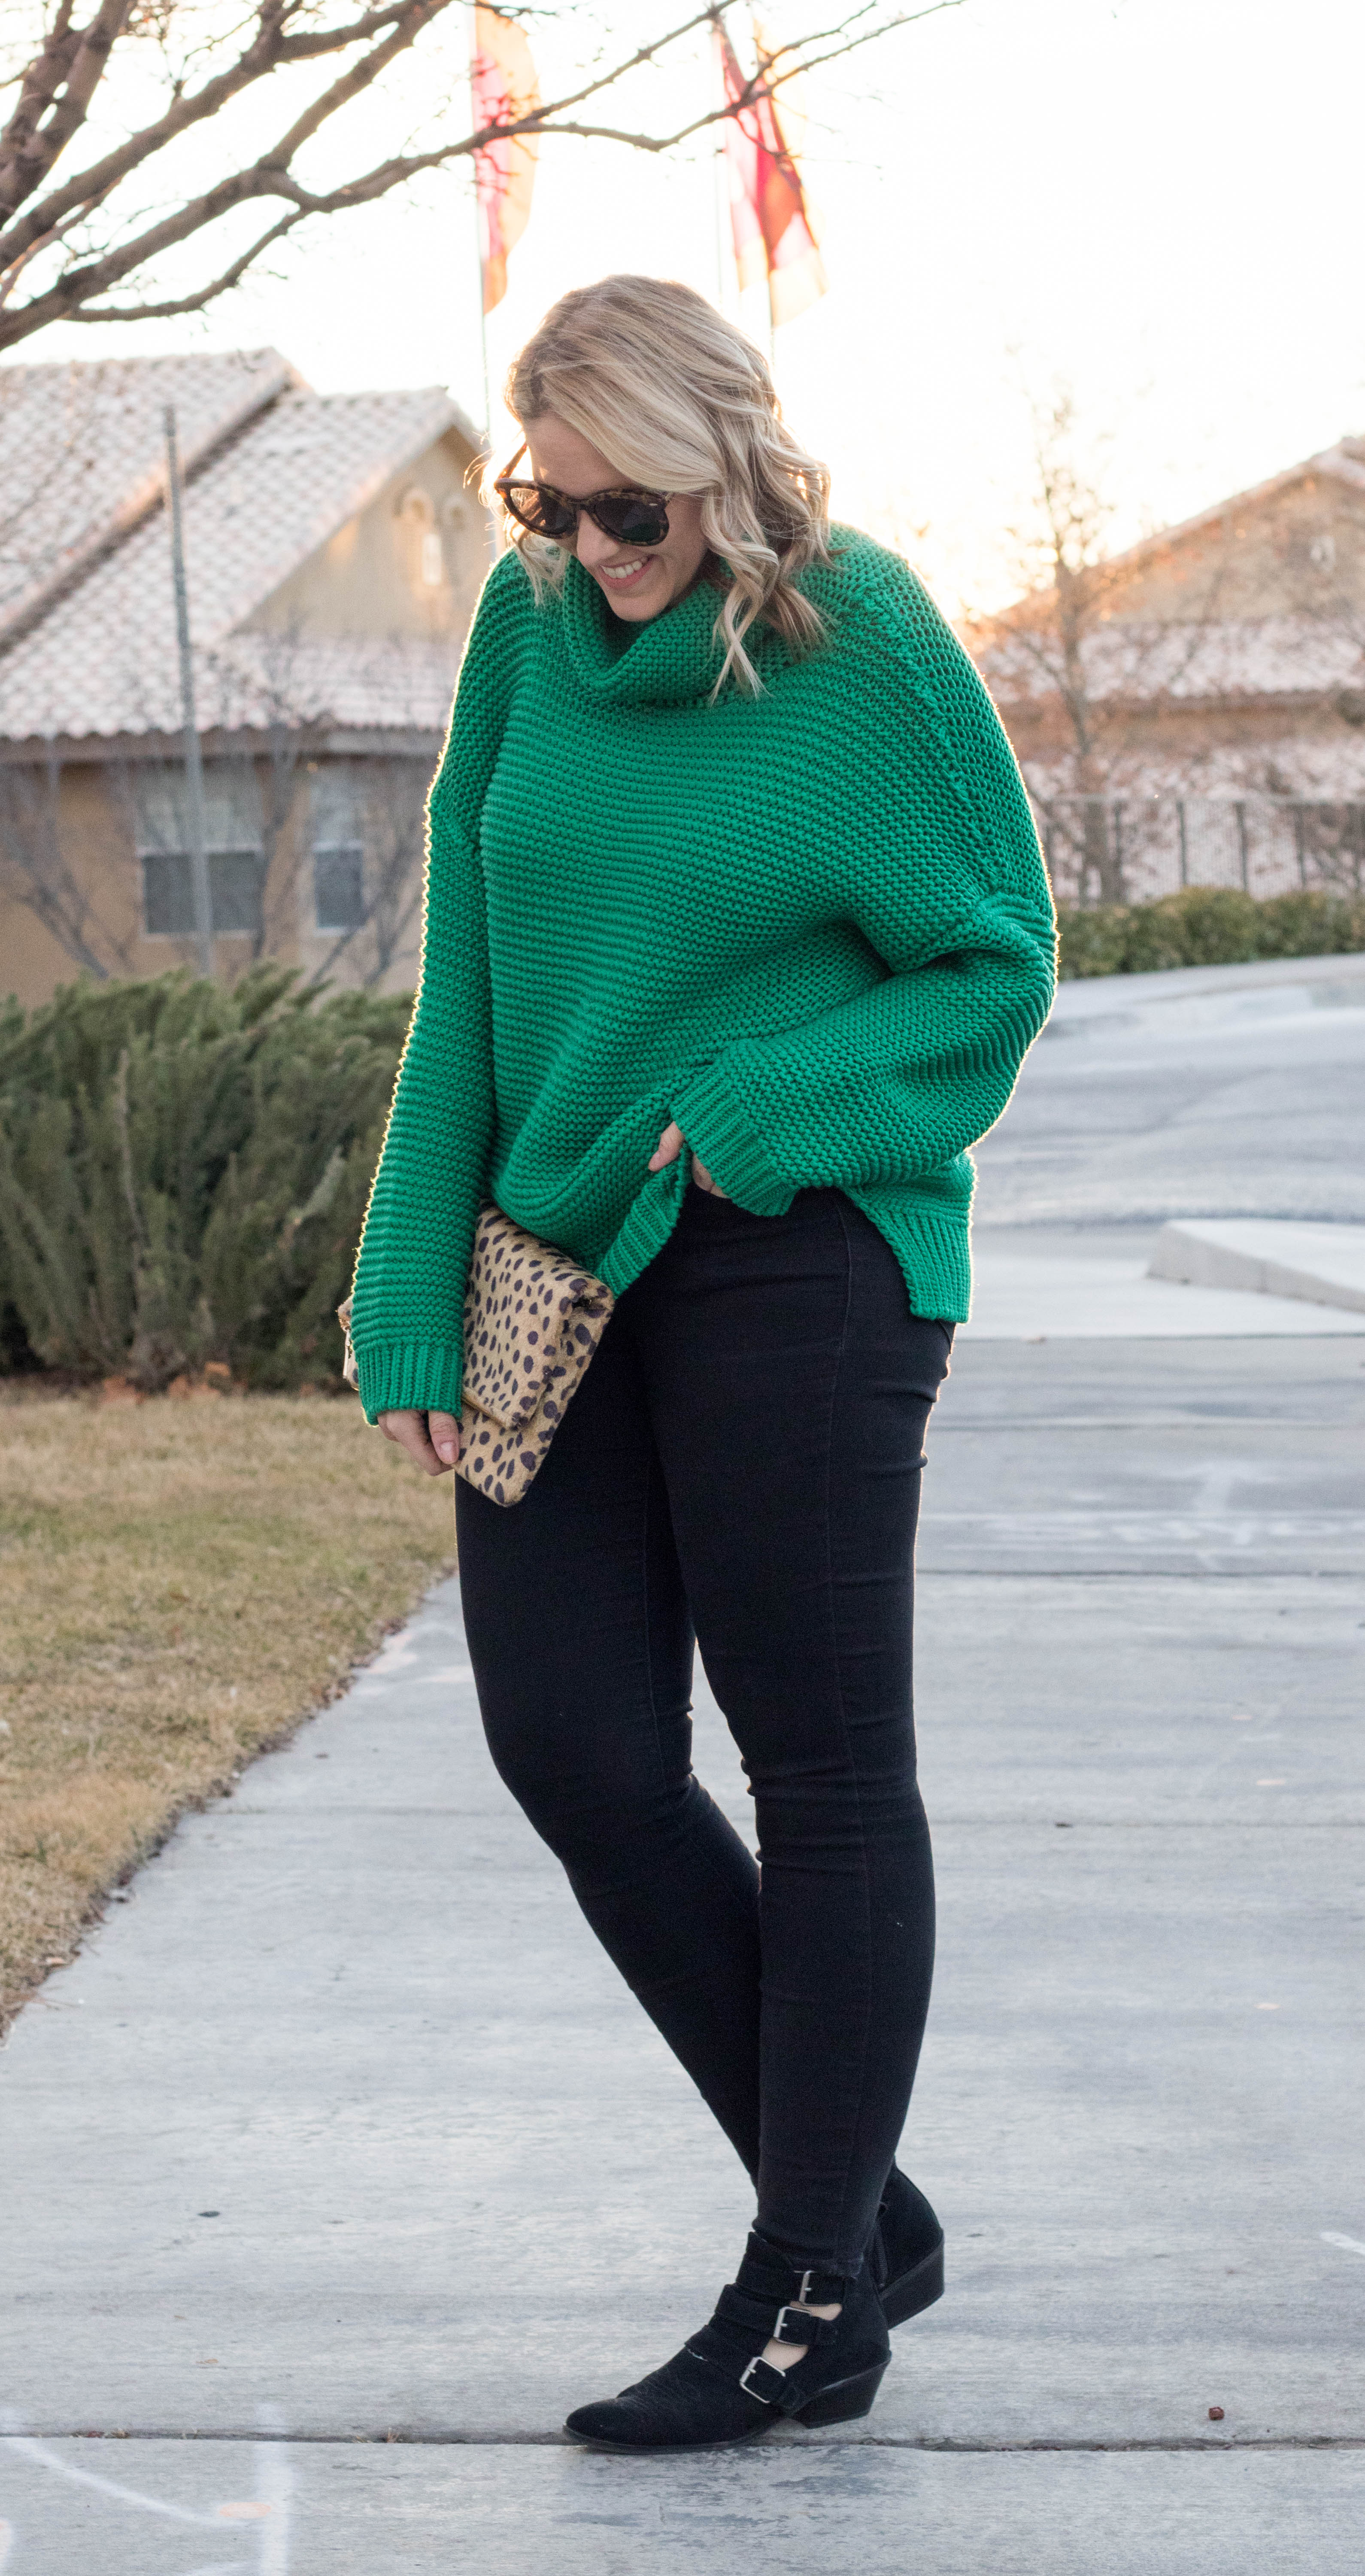 how to style black ankle boots #targetstyle #target #winterlayers